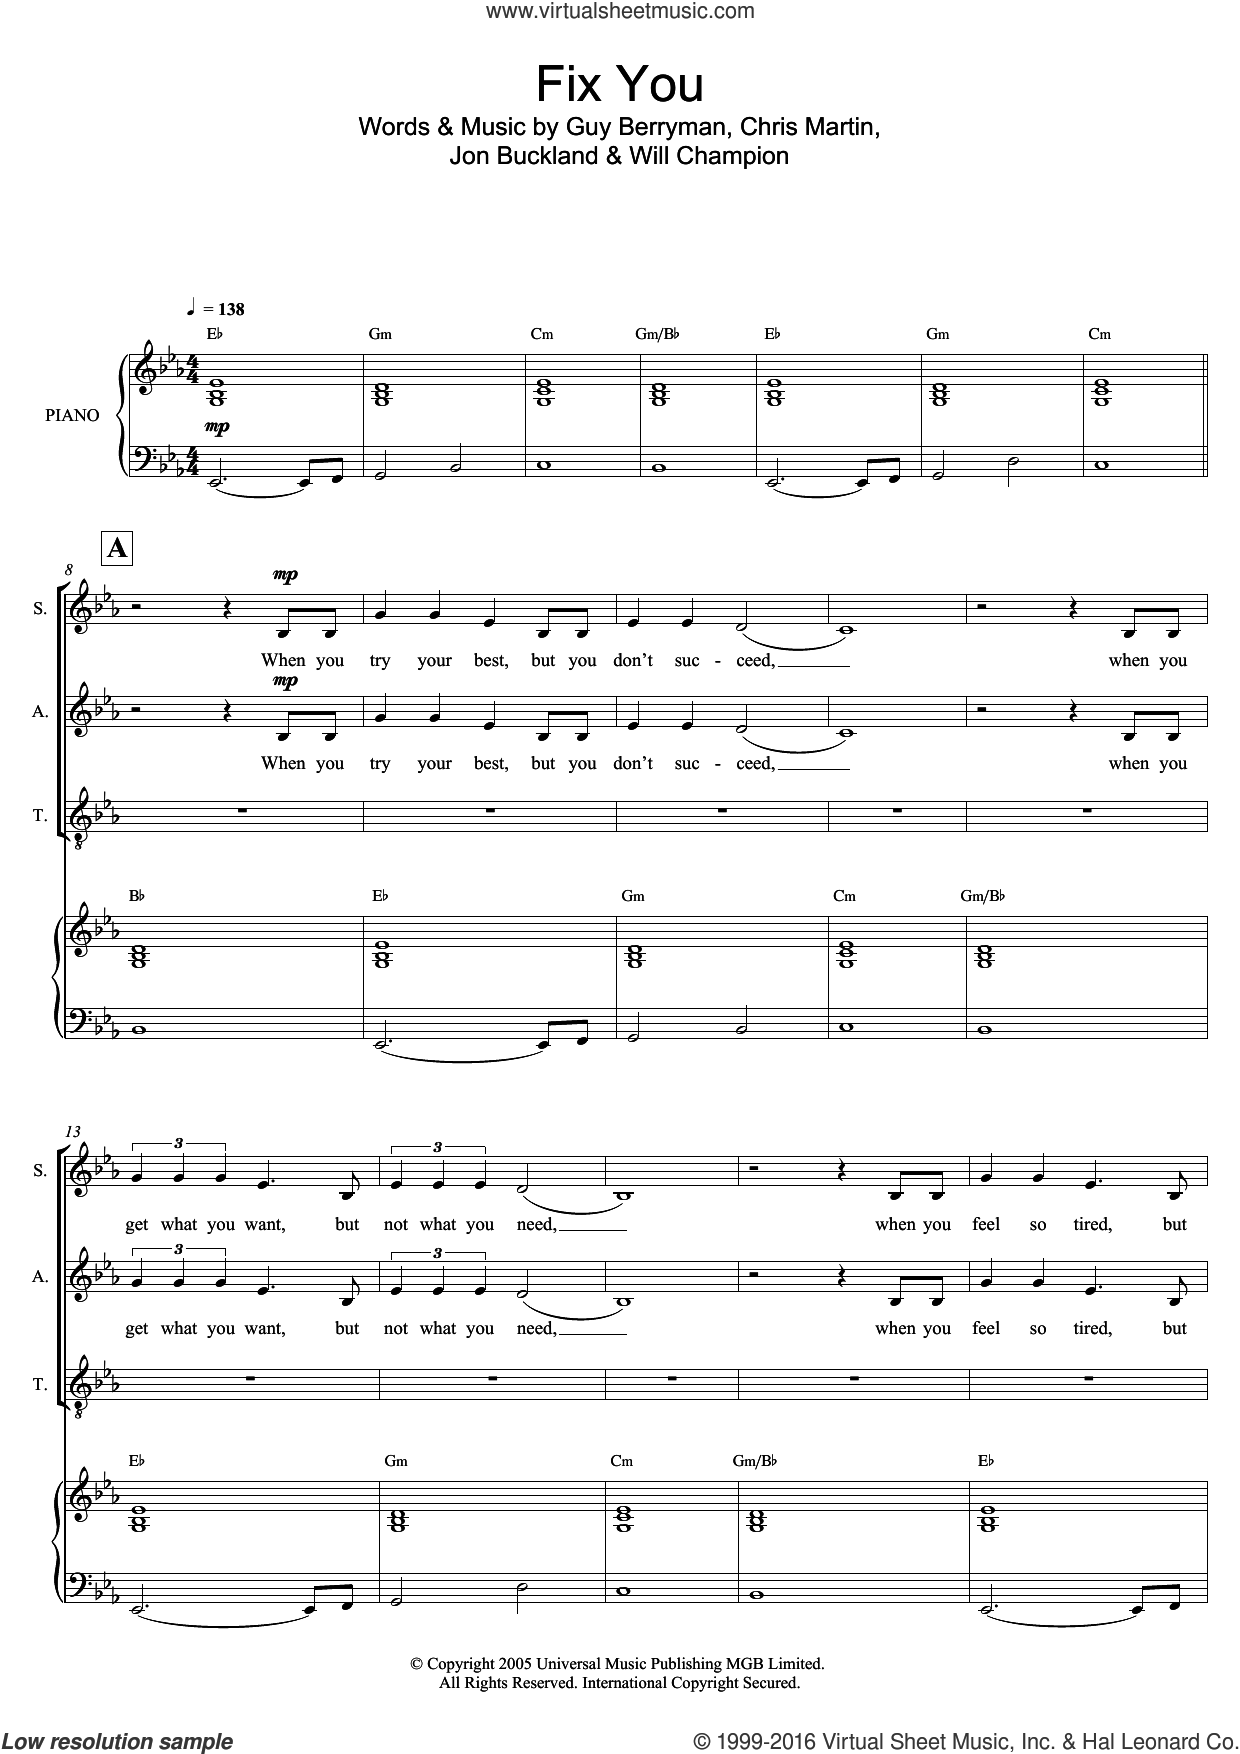 Fix You sheet music for voice, piano or guitar by Coldplay, Mark De-Lisser, Chris Martin, Guy Berryman, Jon Buckland and Will Champion, intermediate skill level